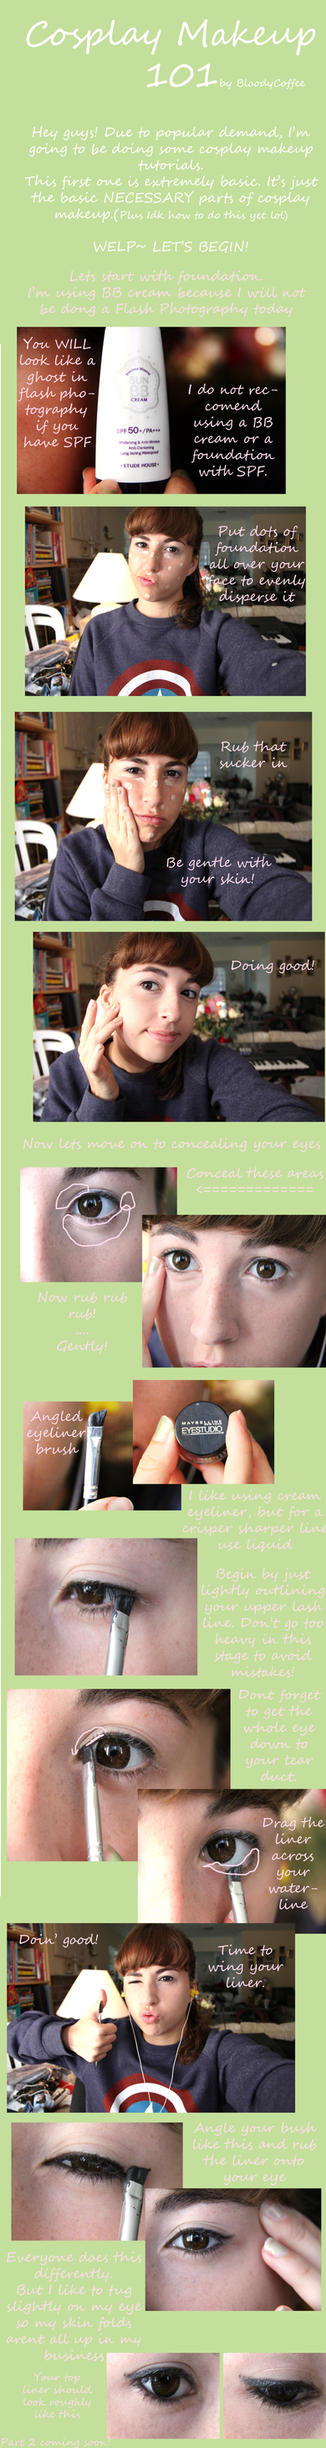 Cosplay makeup 101:part 1 by BloodyCoffee